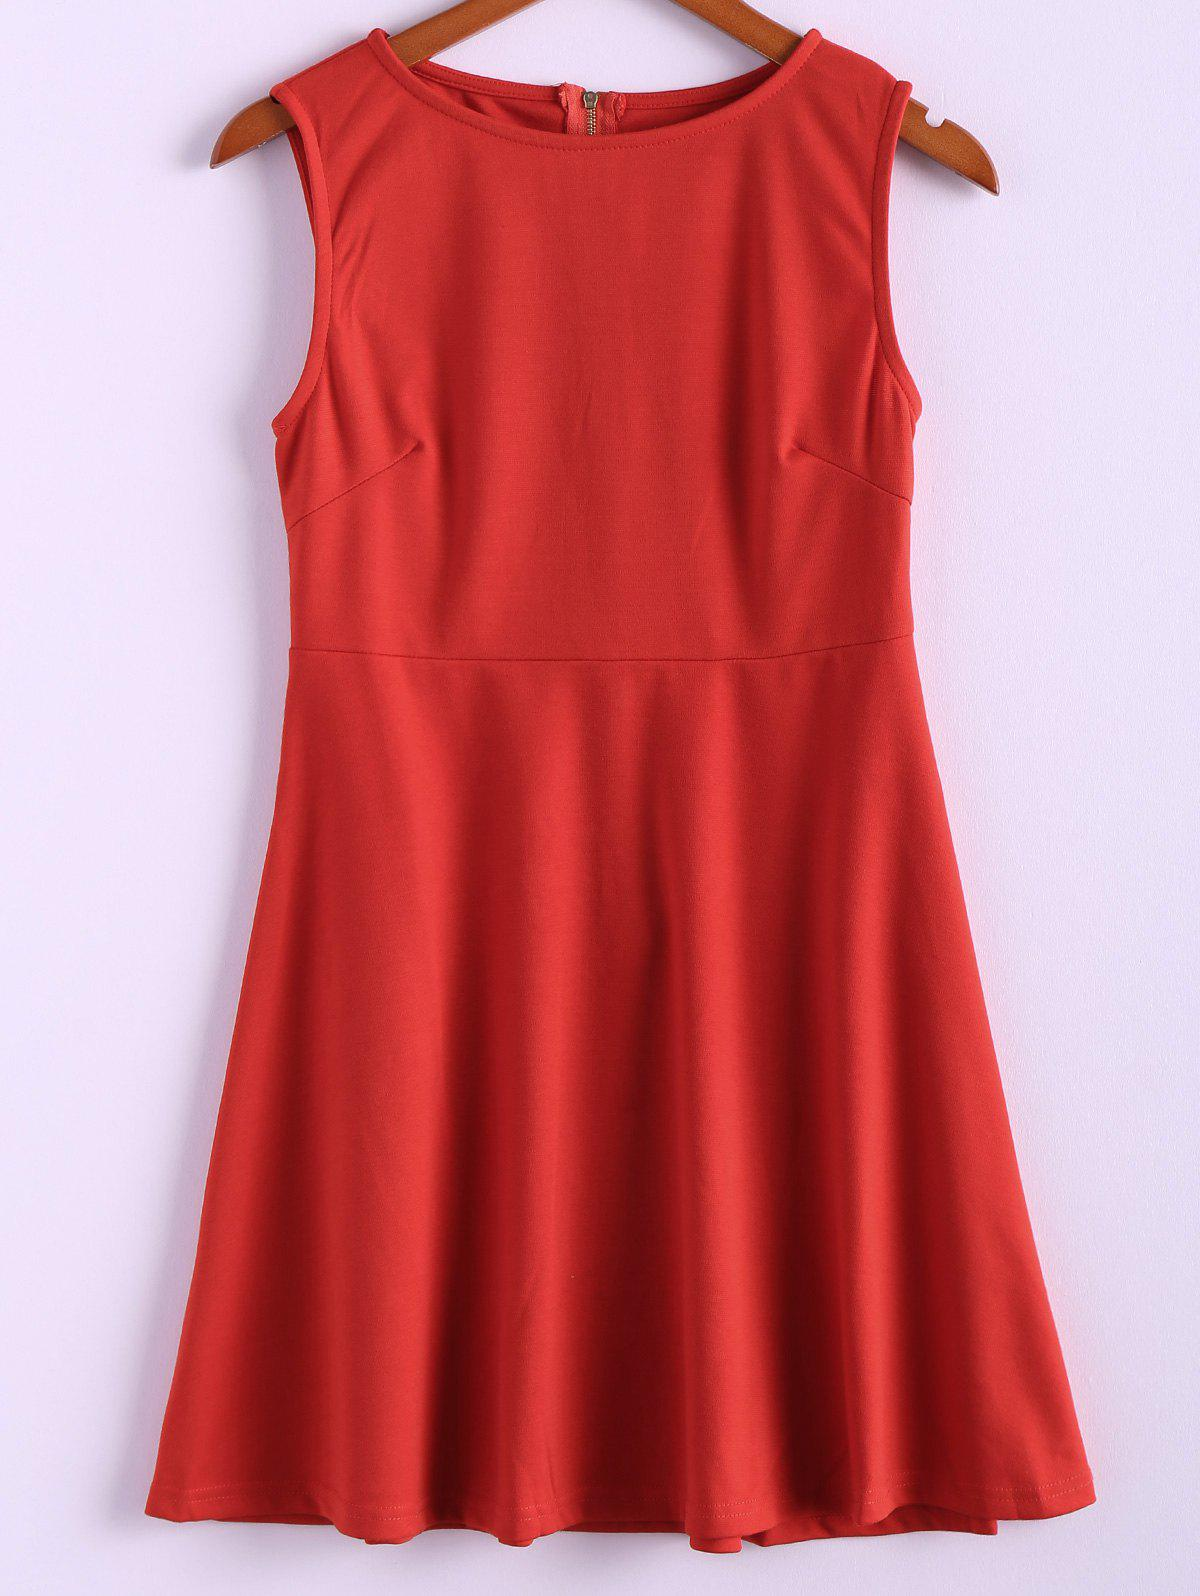 Simple Style Polyester Round Neck Zipper Sleeveless Women's Dress (Without Belt) - RED M